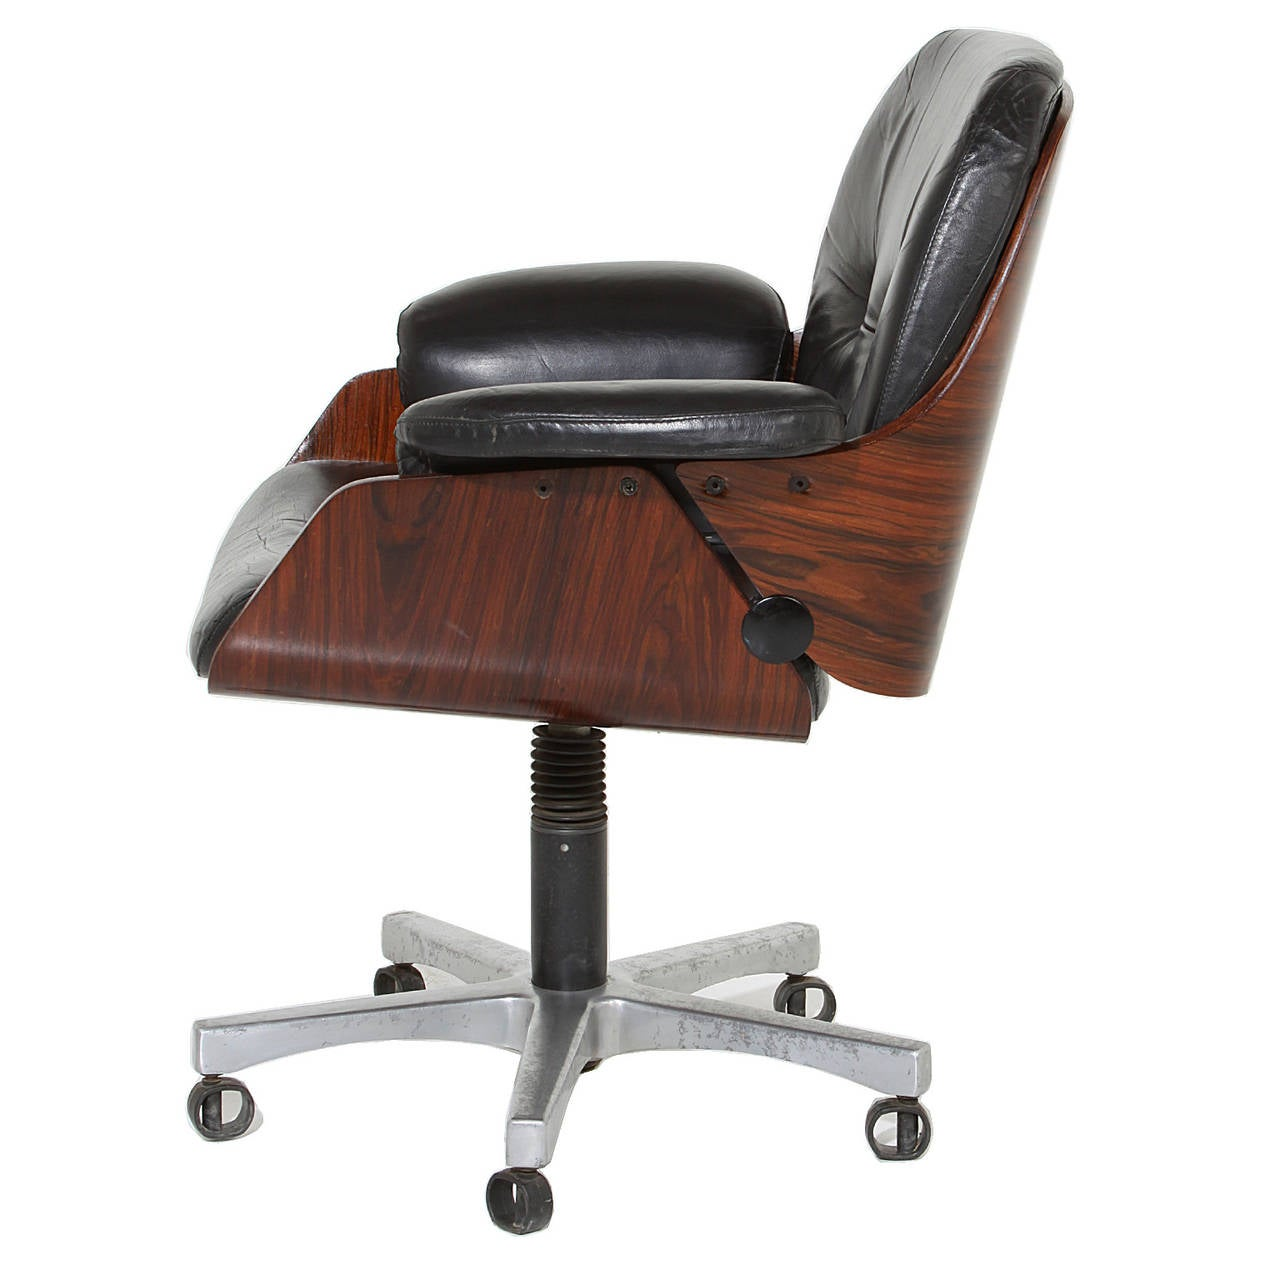 Vintage Office Chair In Rosewood And Black Leather 2